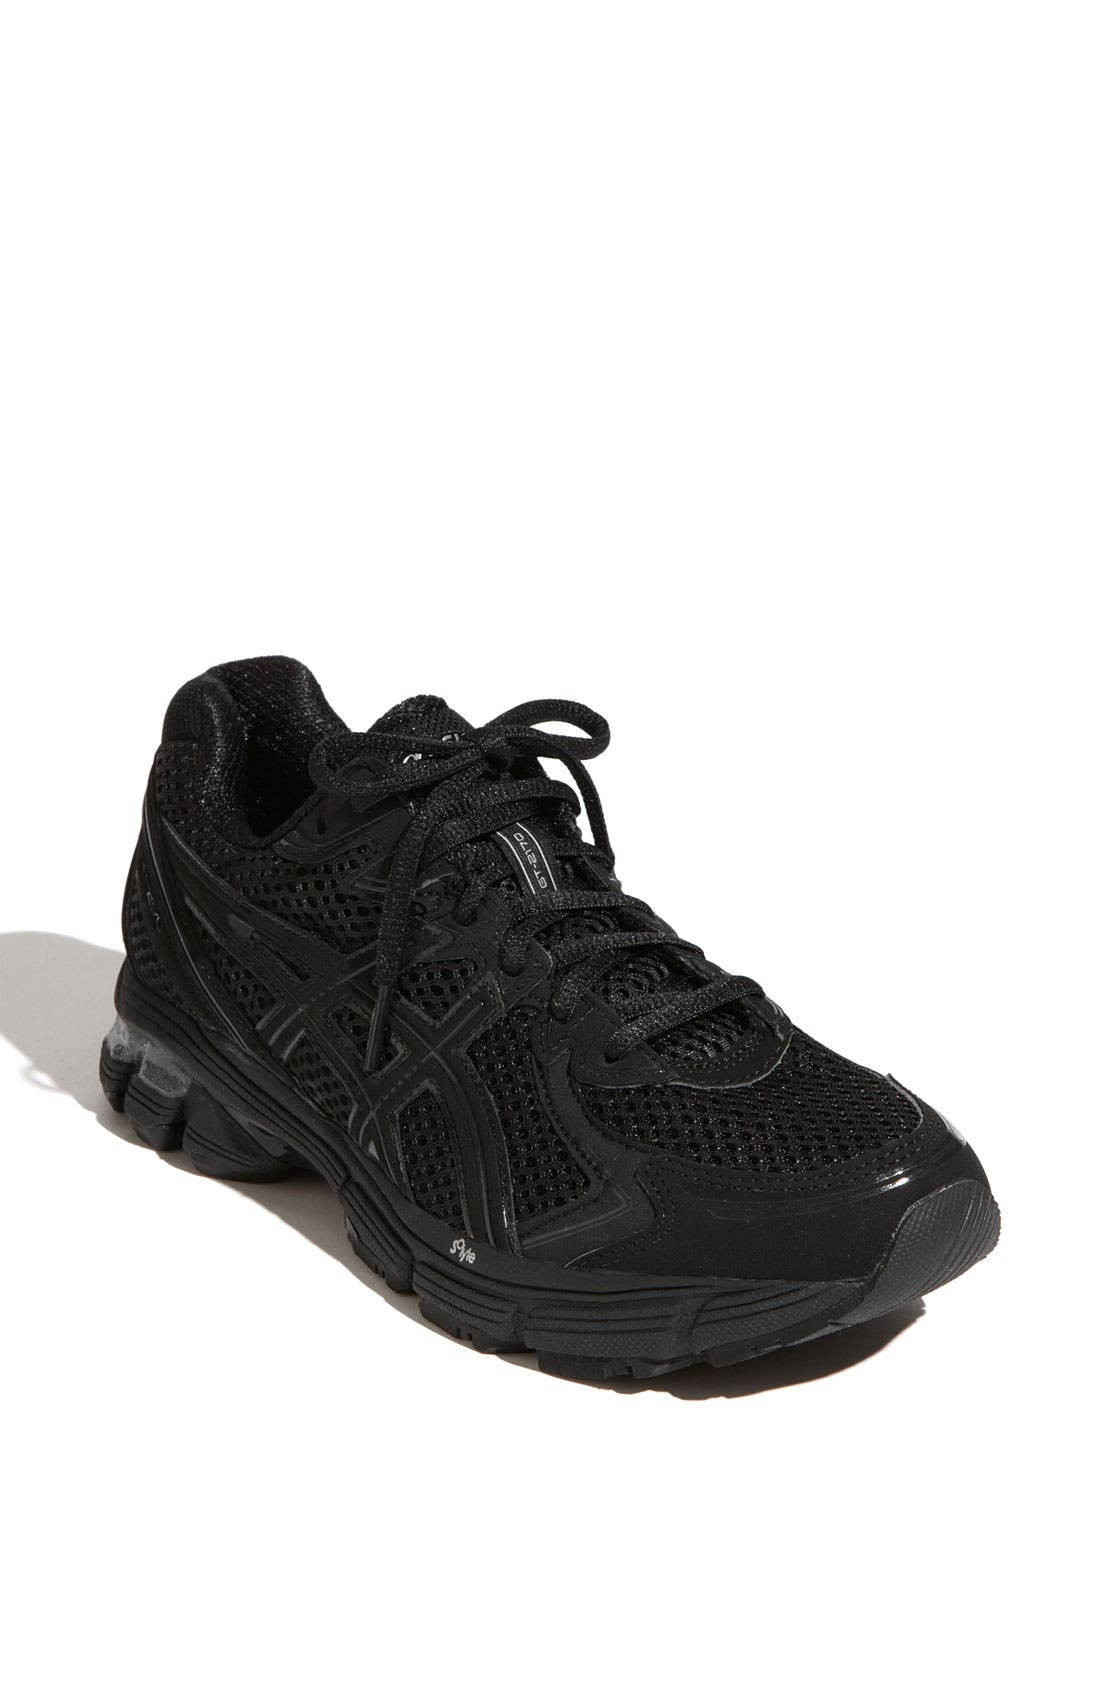 Alternate Image 1 Selected - ASICS® 'GT 2170' Running Shoe (Men)